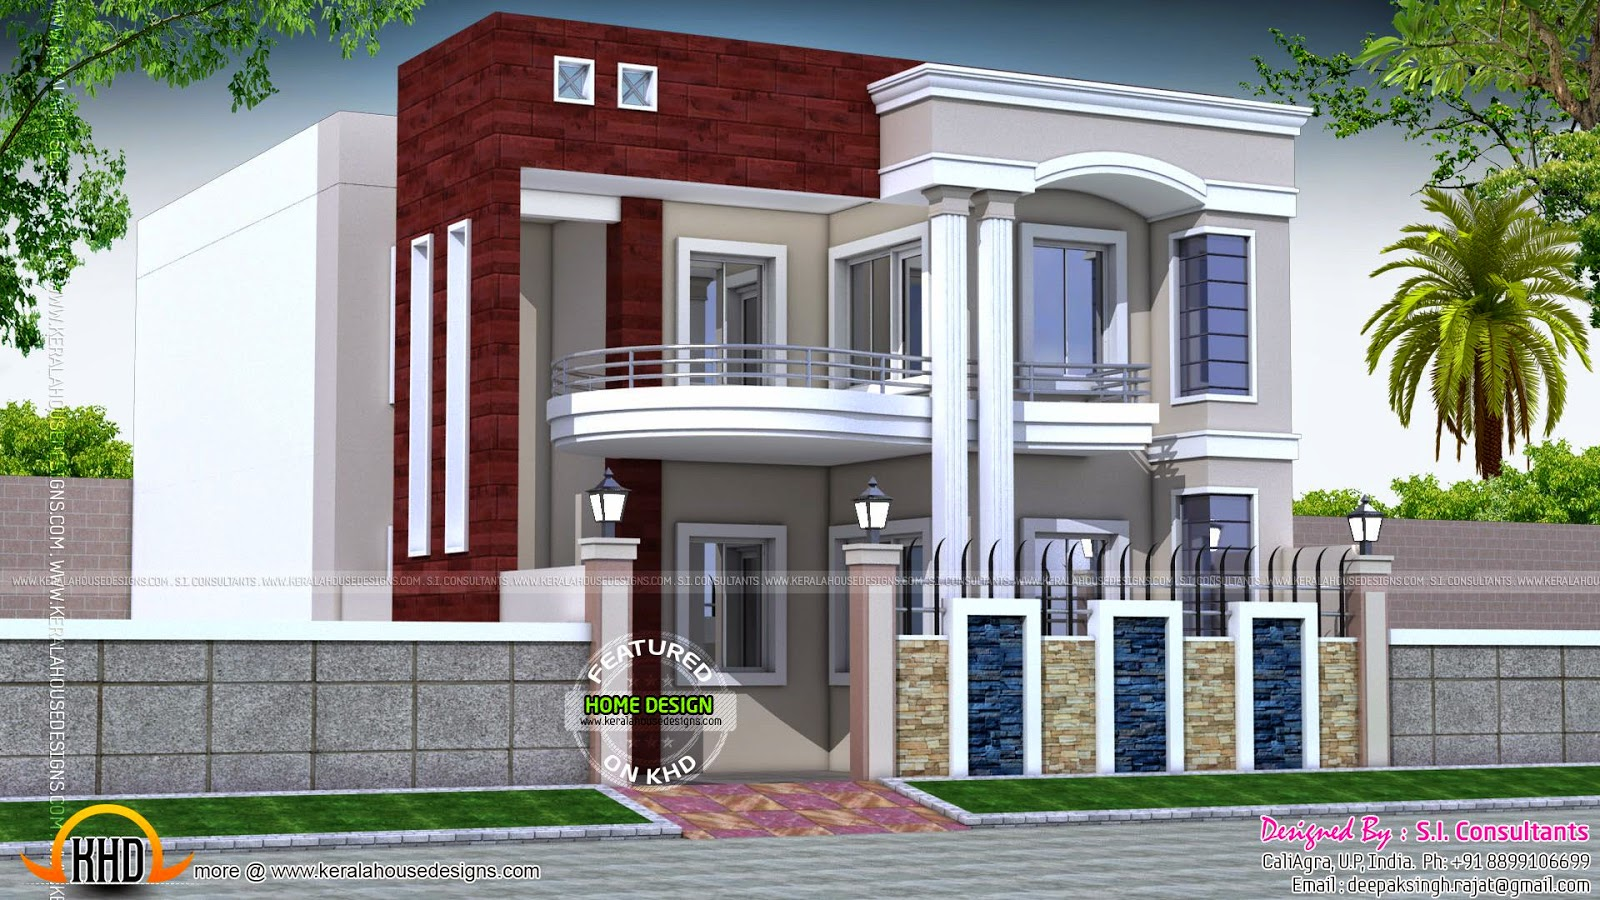 House design in north india kerala home design and floor for House structure design in india